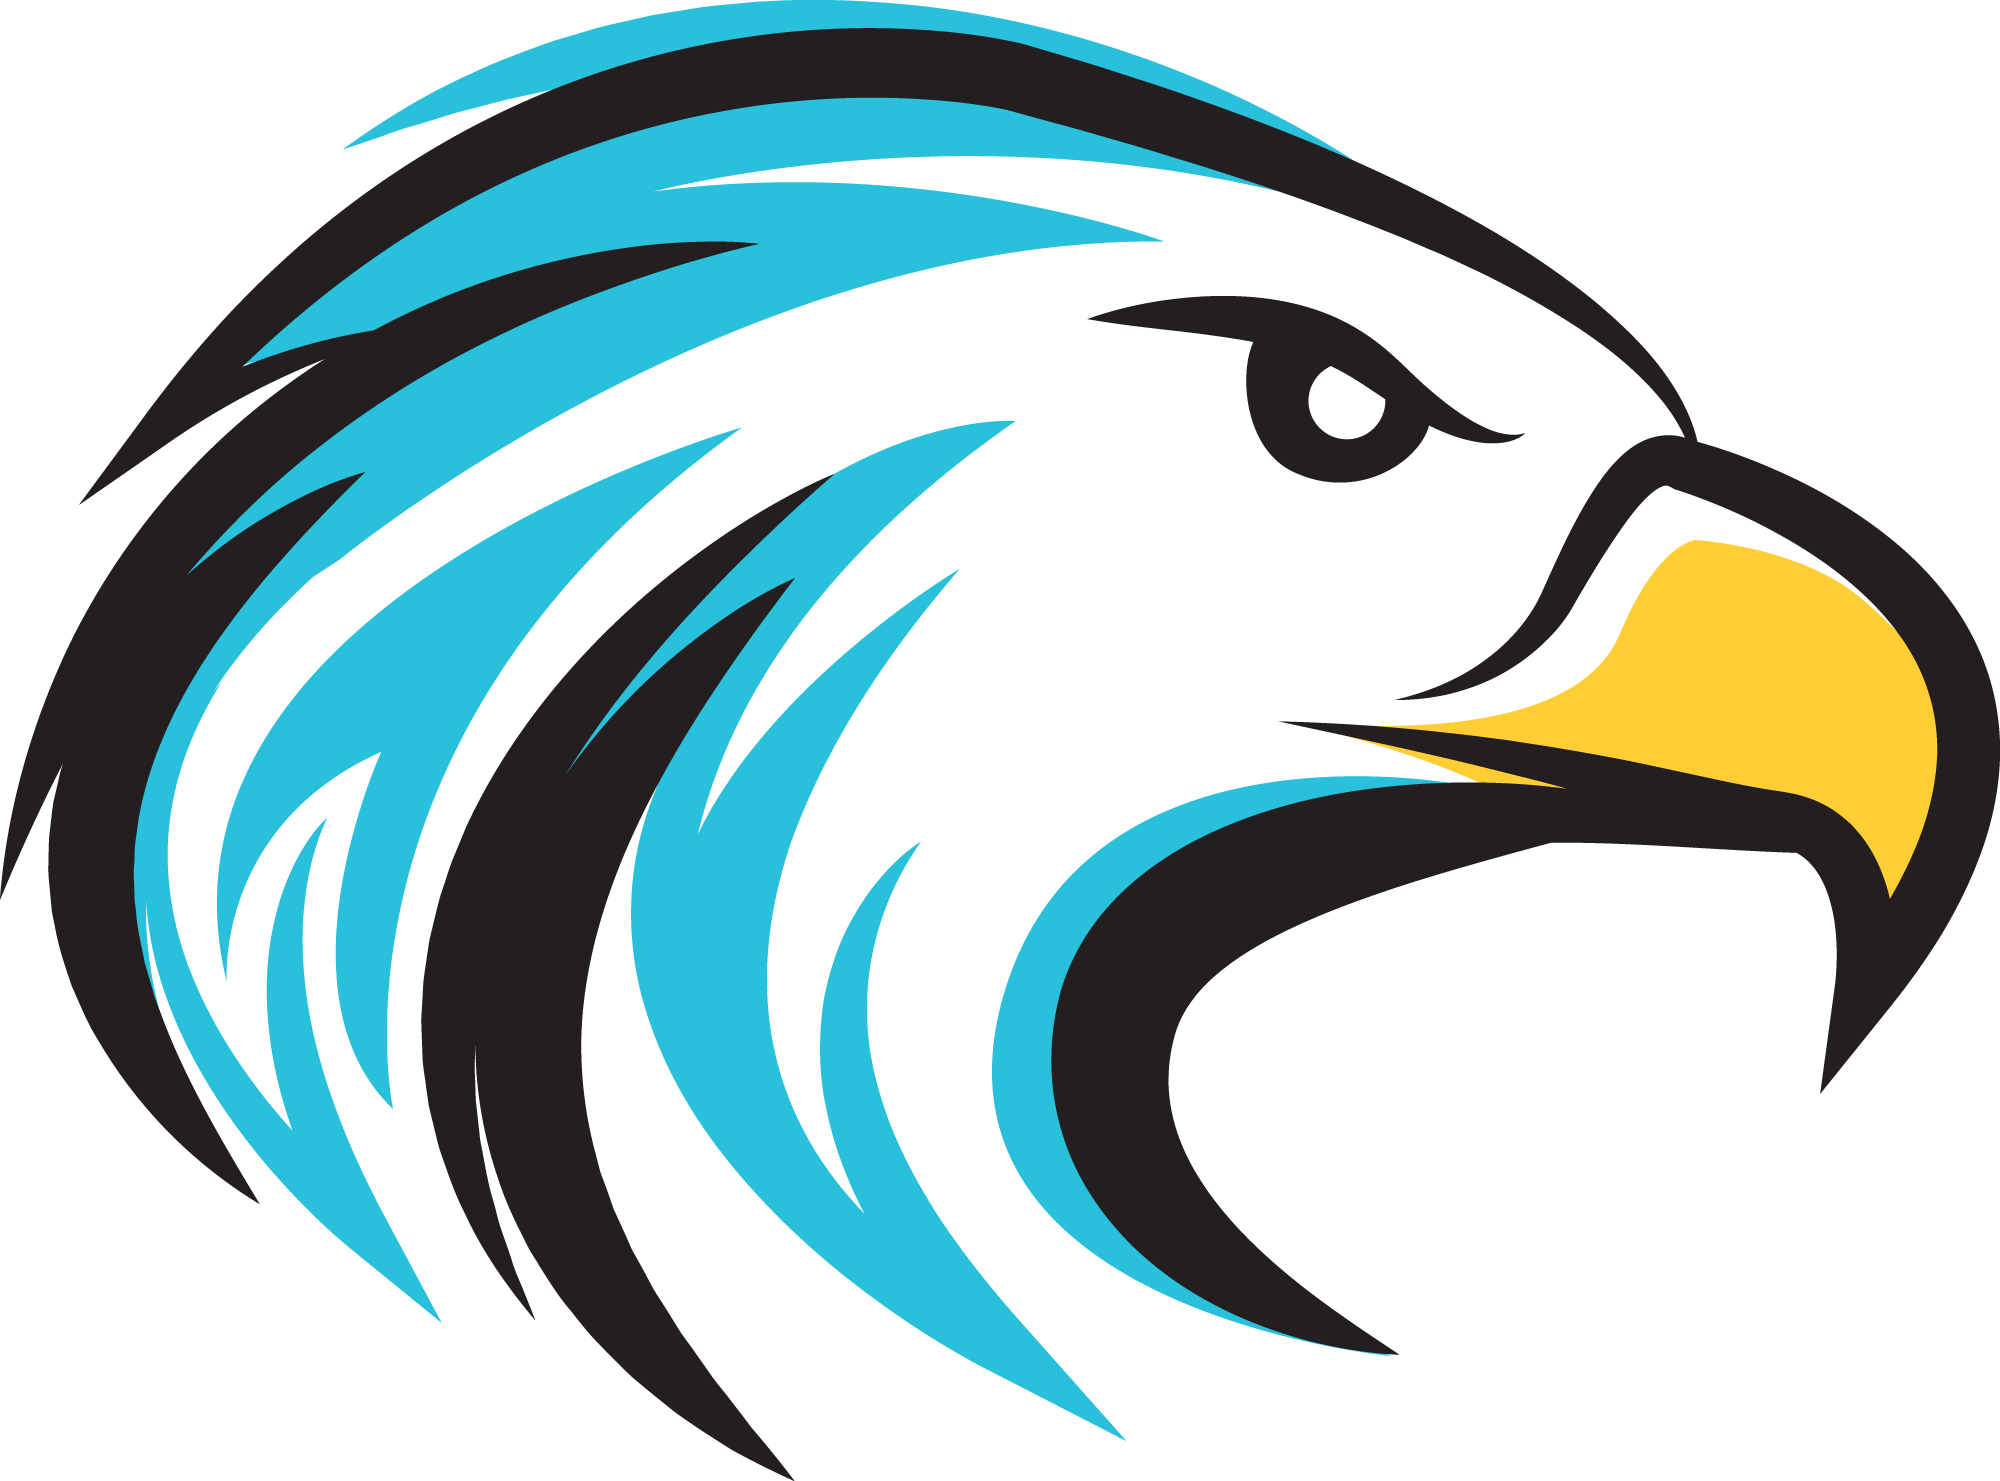 Eagle school mascot clipart. Dysart elementary district spelling